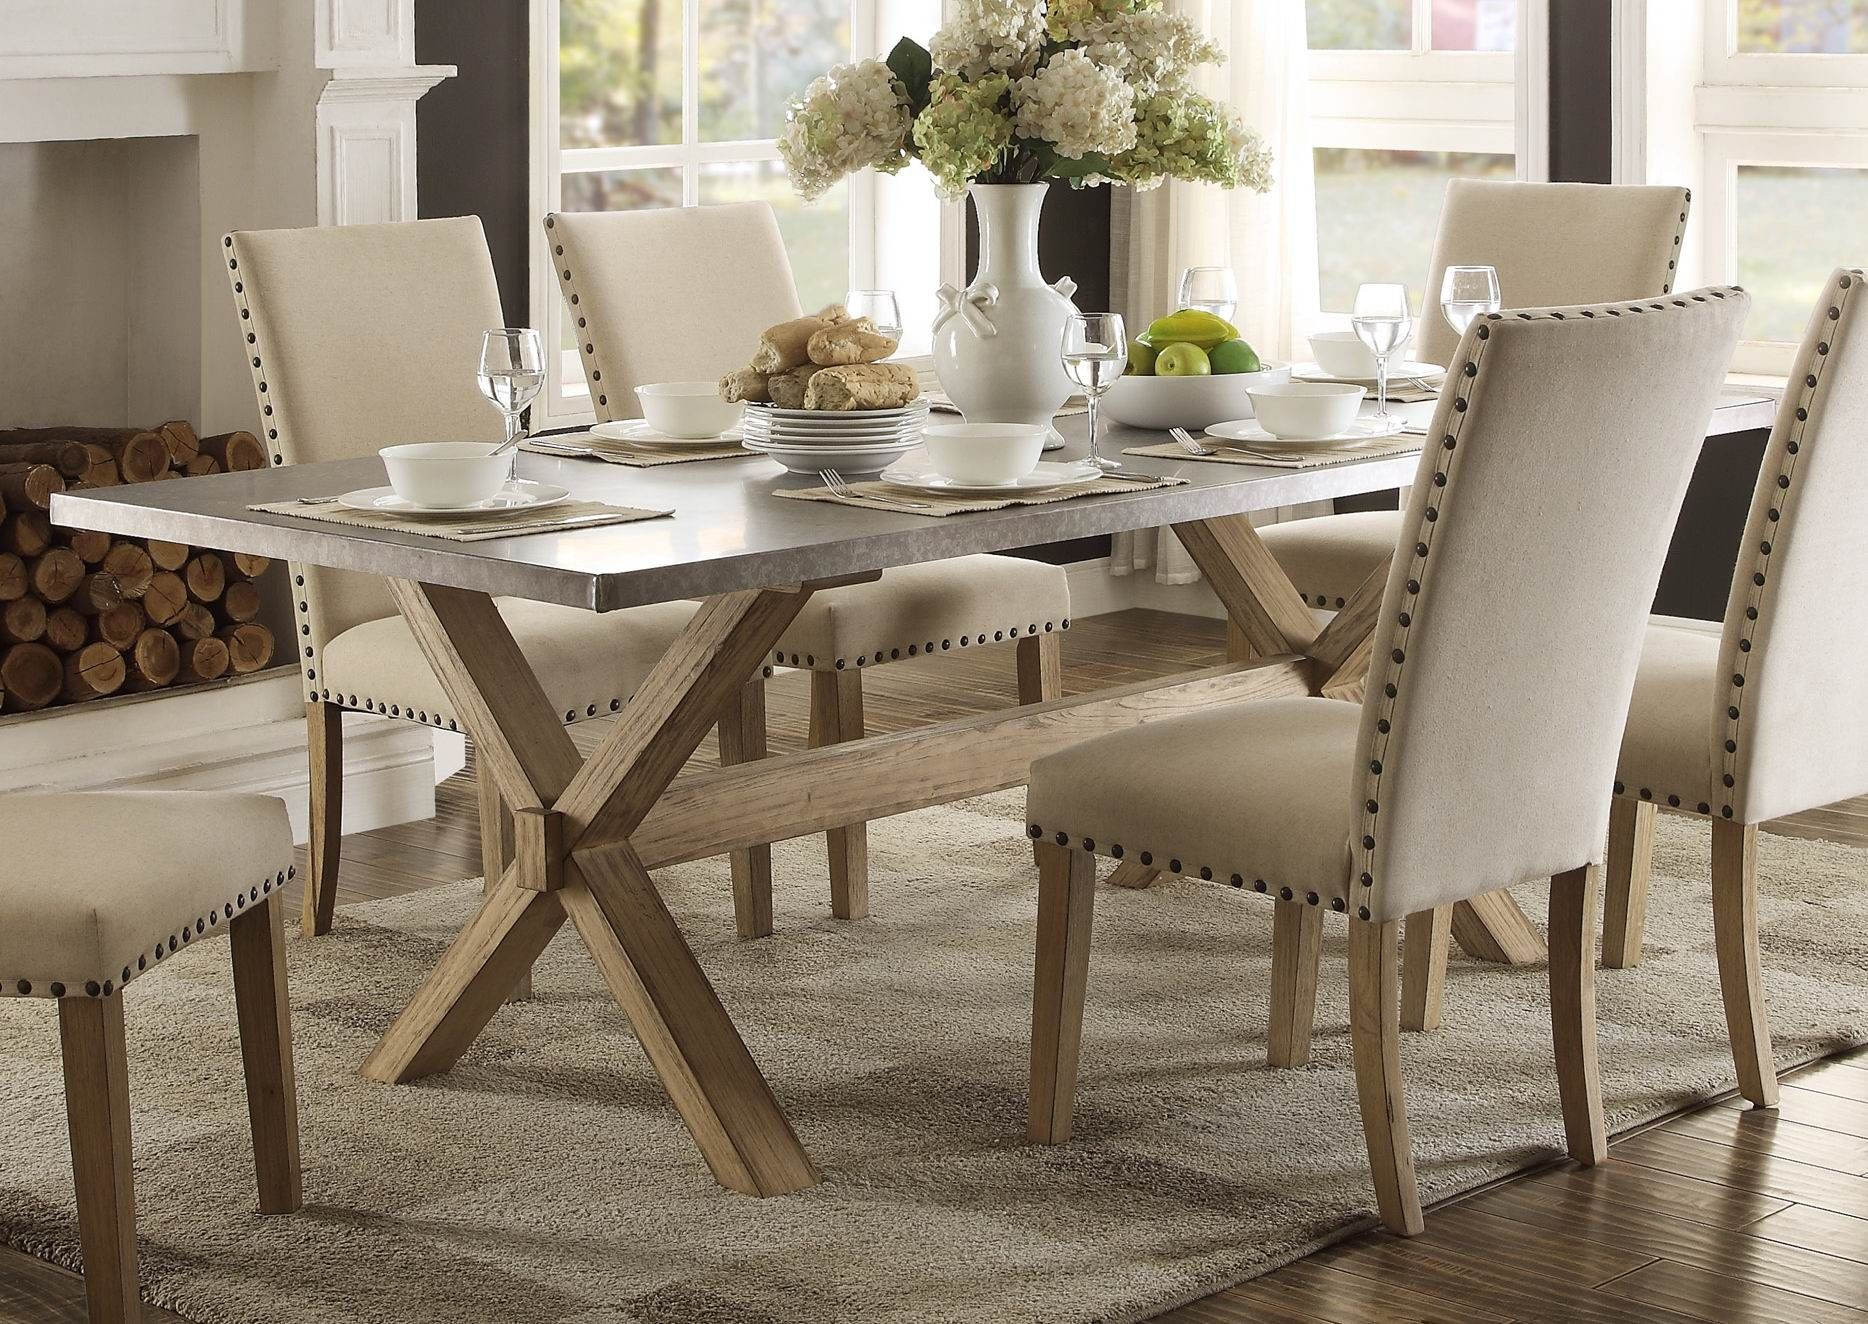 Luella Cool Weathered Oak Zinc Top Dining Table From